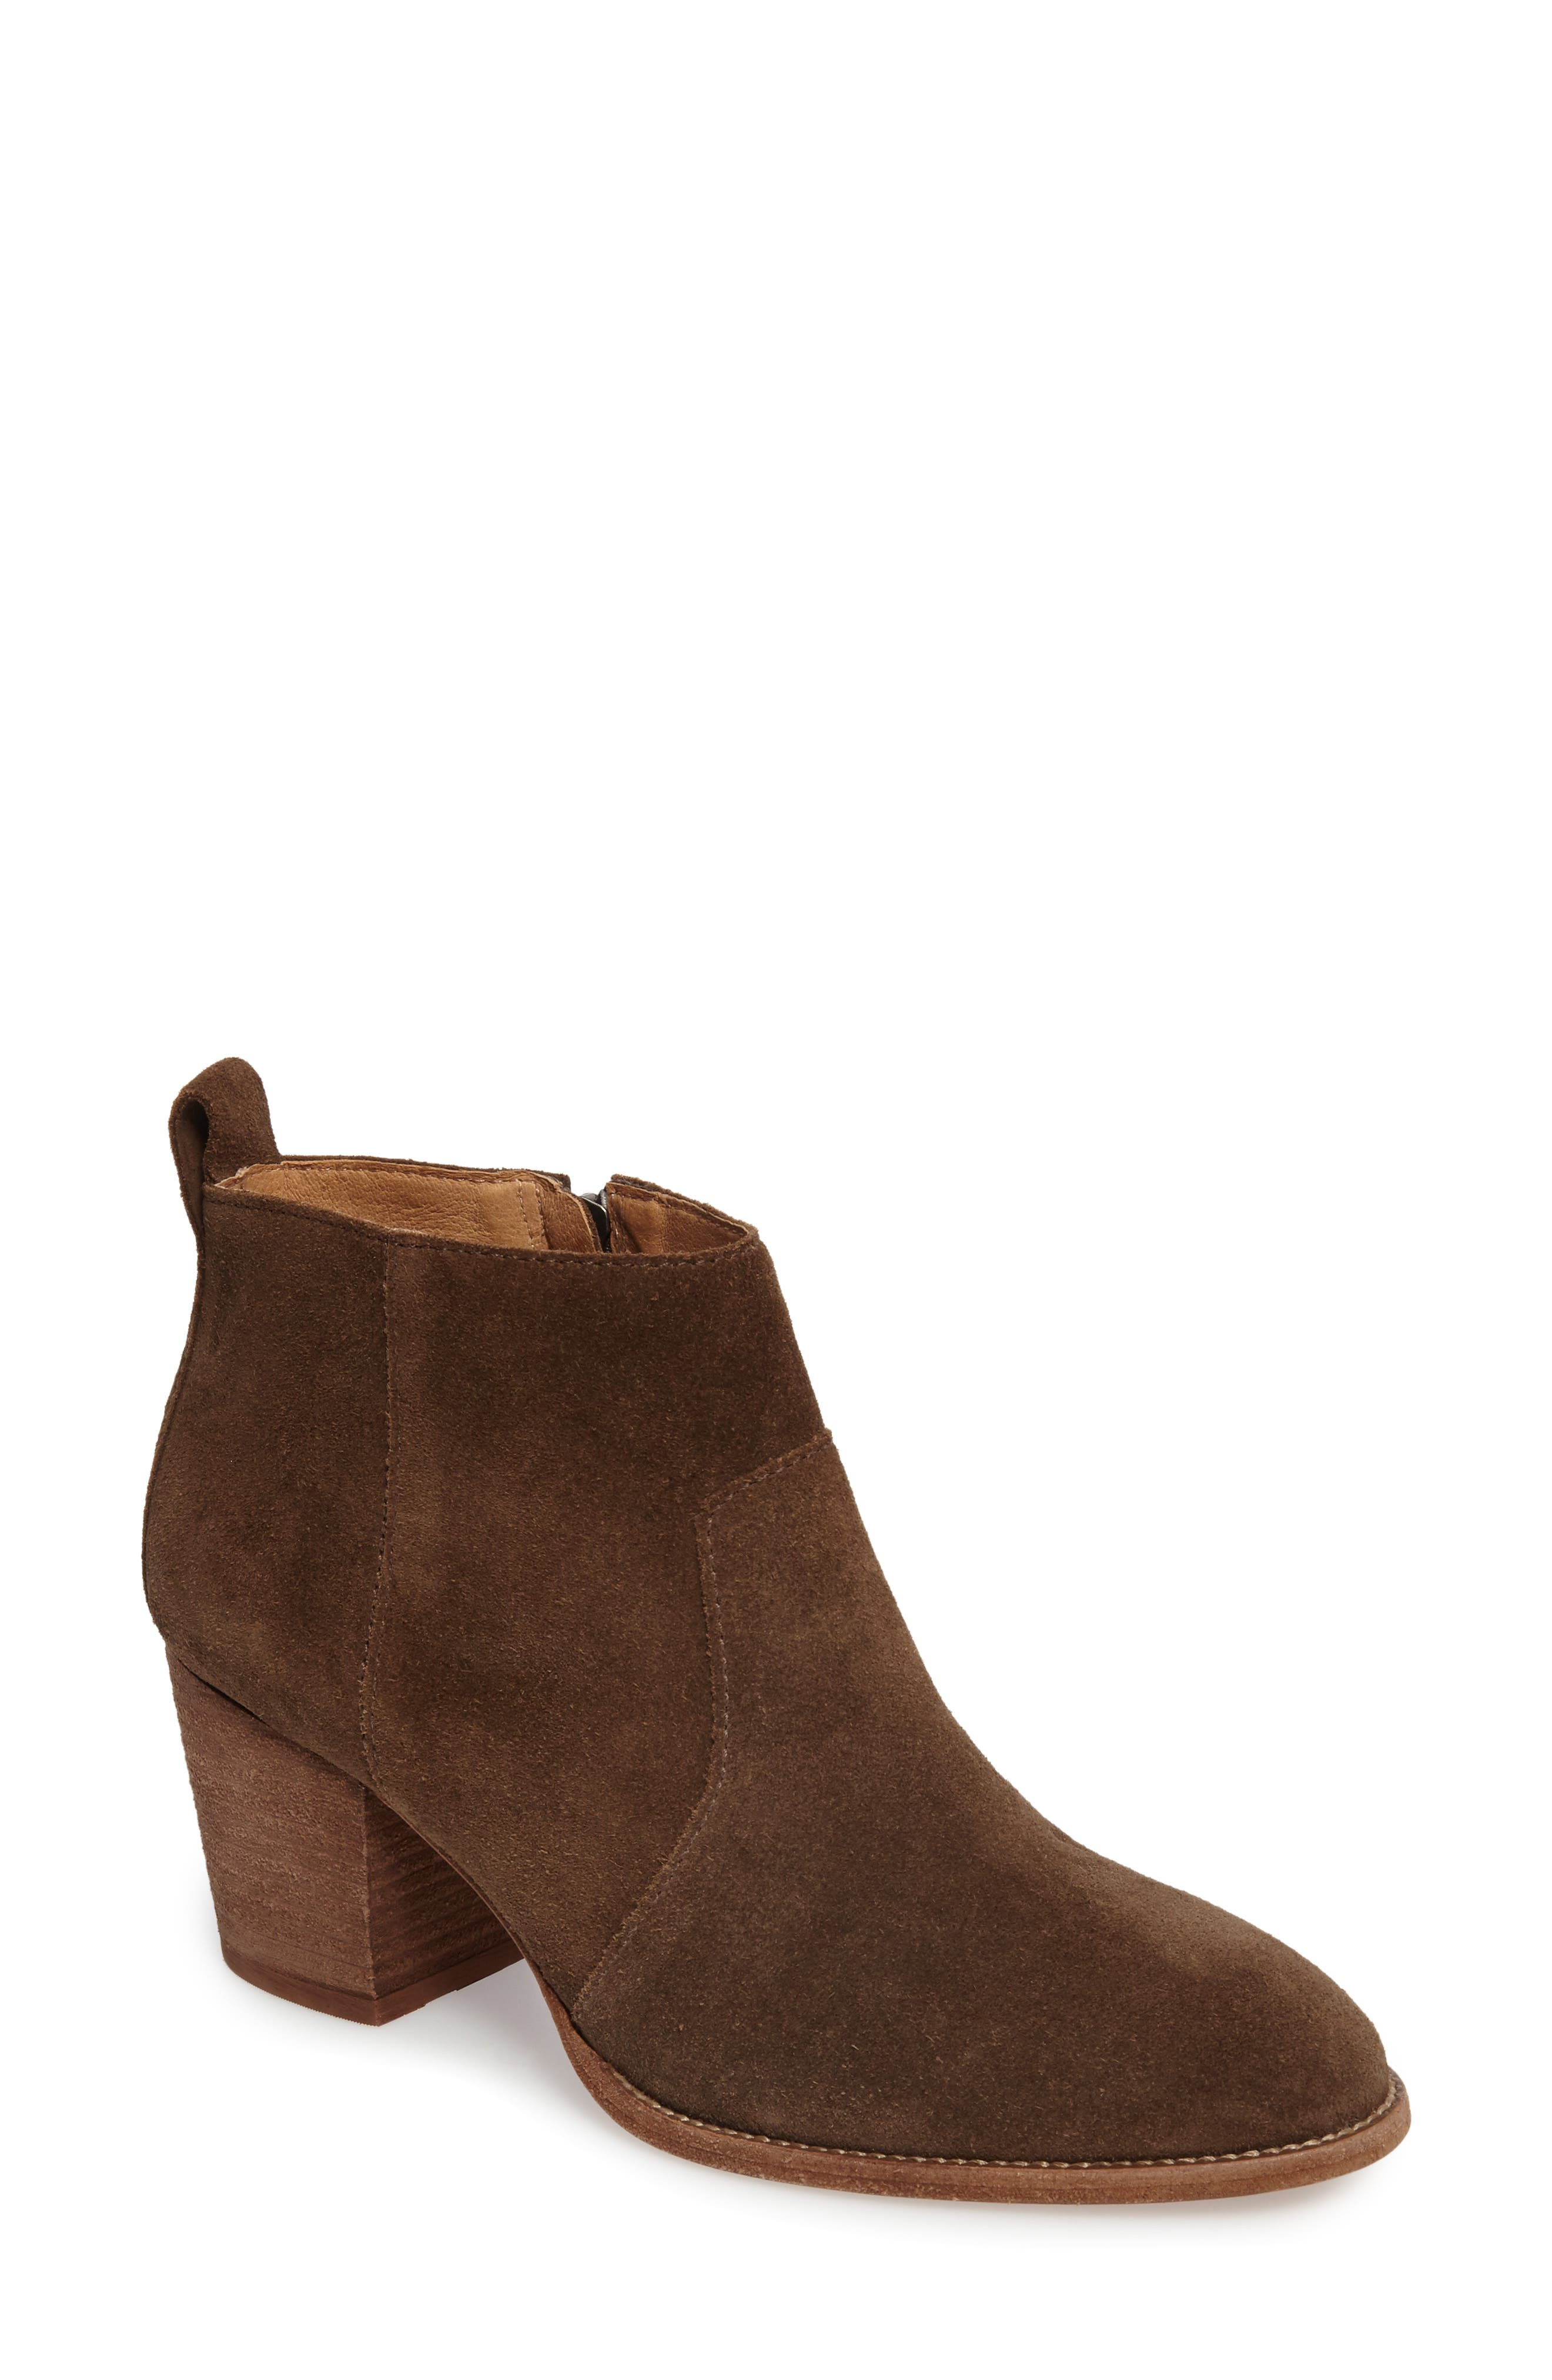 Main Image - Madewell Brenner Bootie (Women)